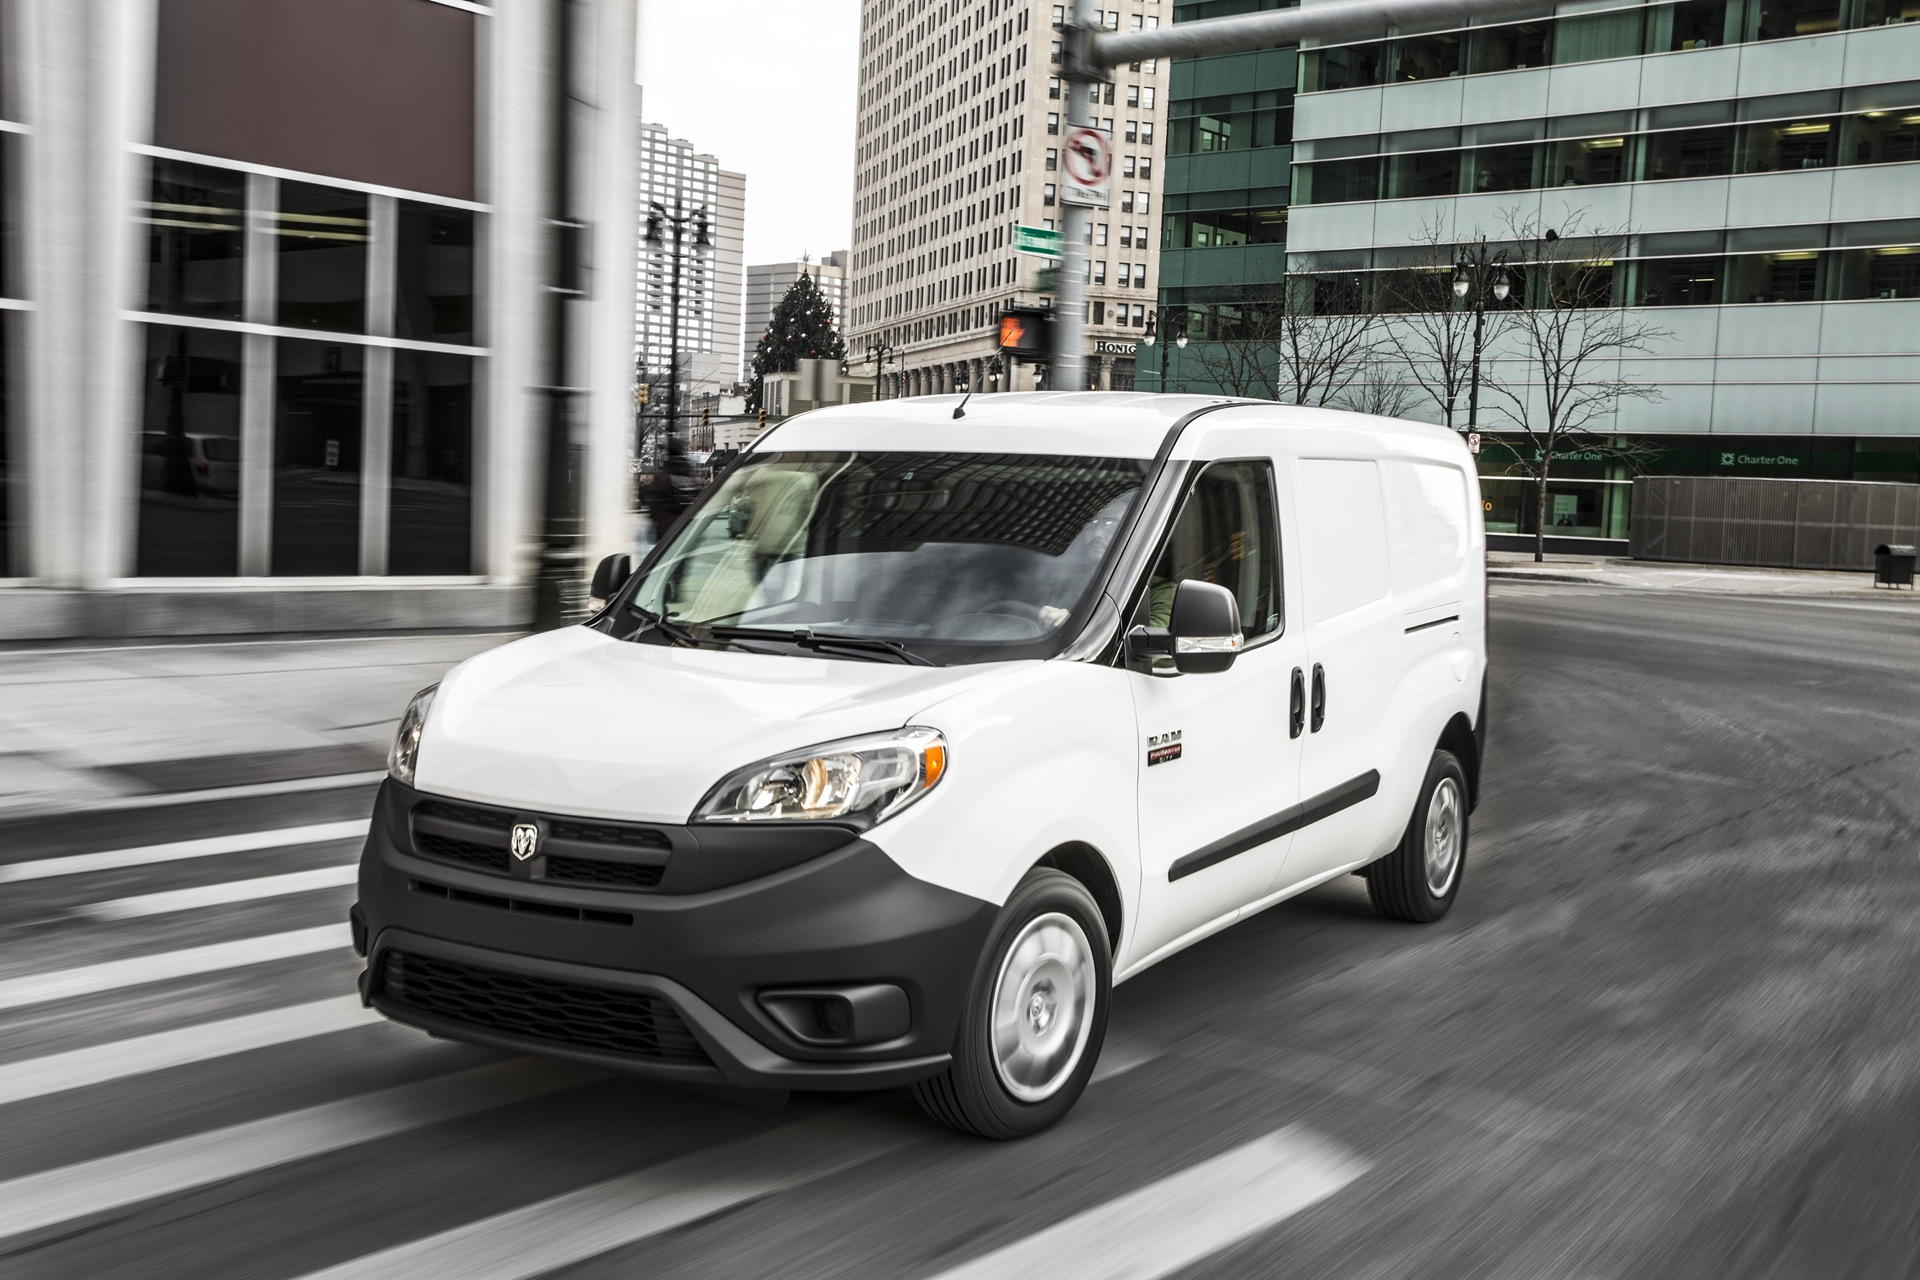 2015 ram promaster city review ratings specs prices and photos the car connection. Black Bedroom Furniture Sets. Home Design Ideas